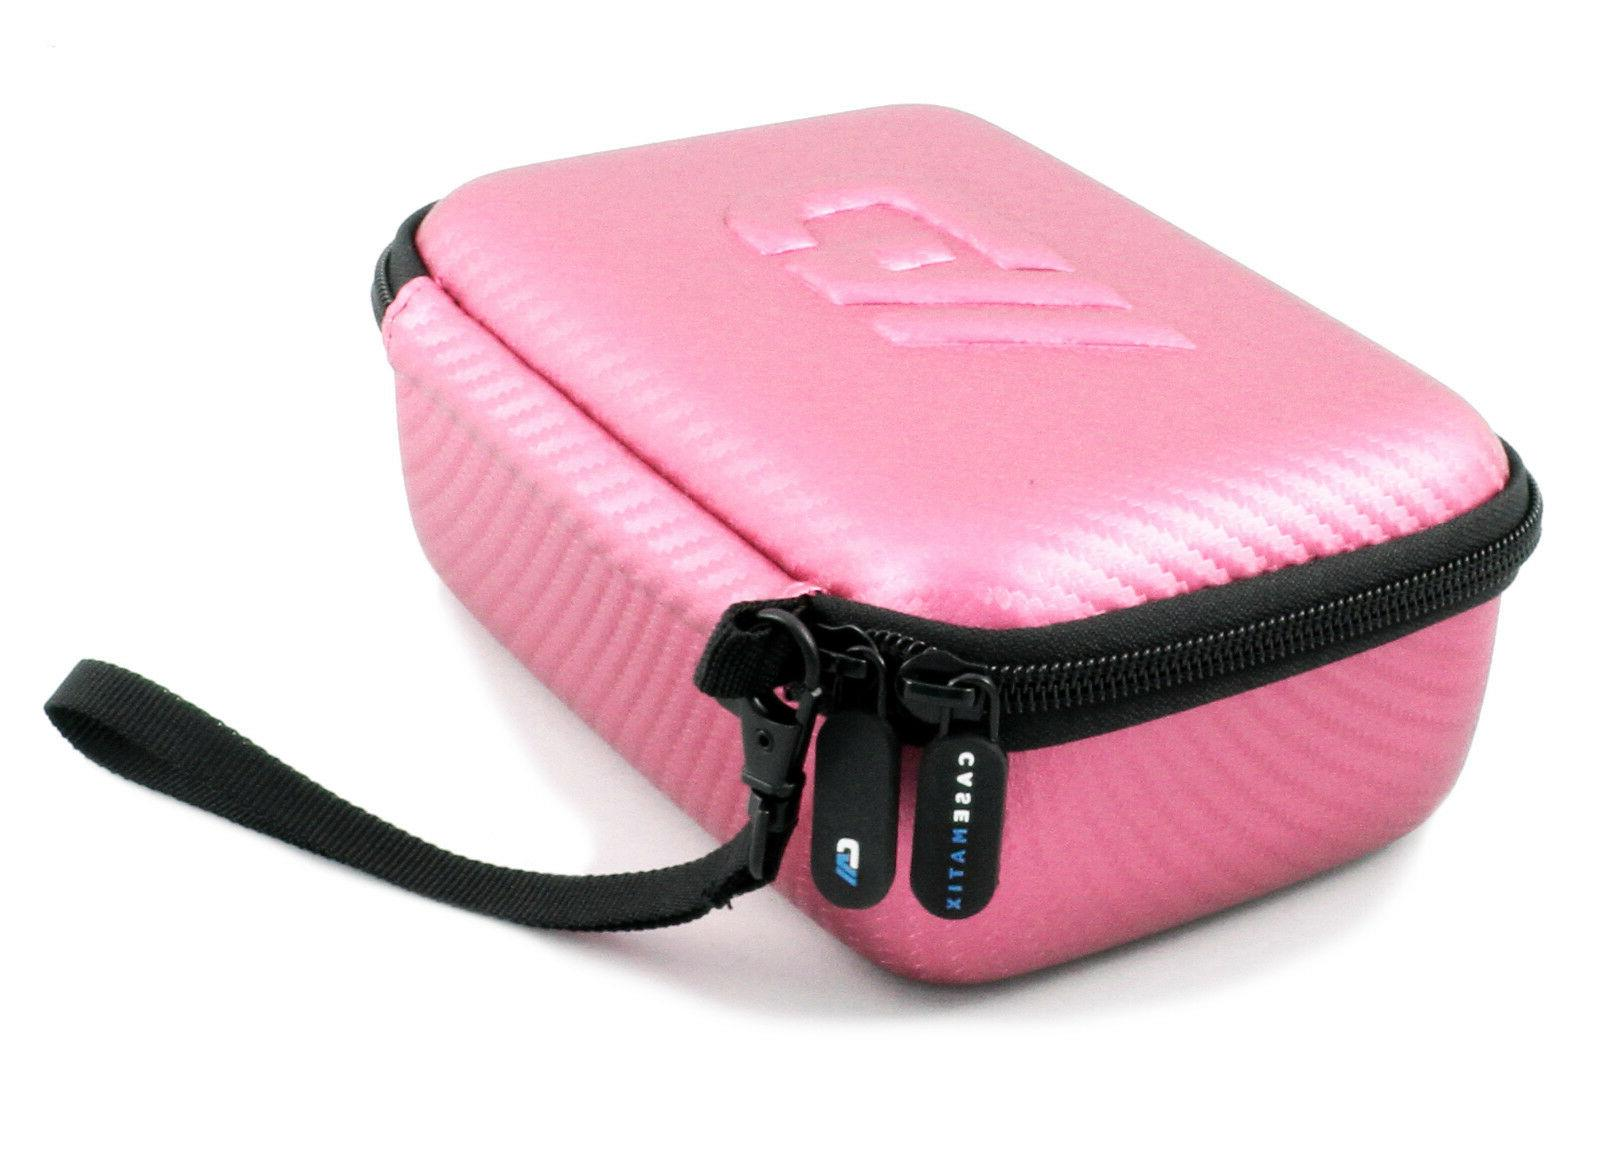 Pink KIDCASE Fits Kids with Video Camera, Accessories